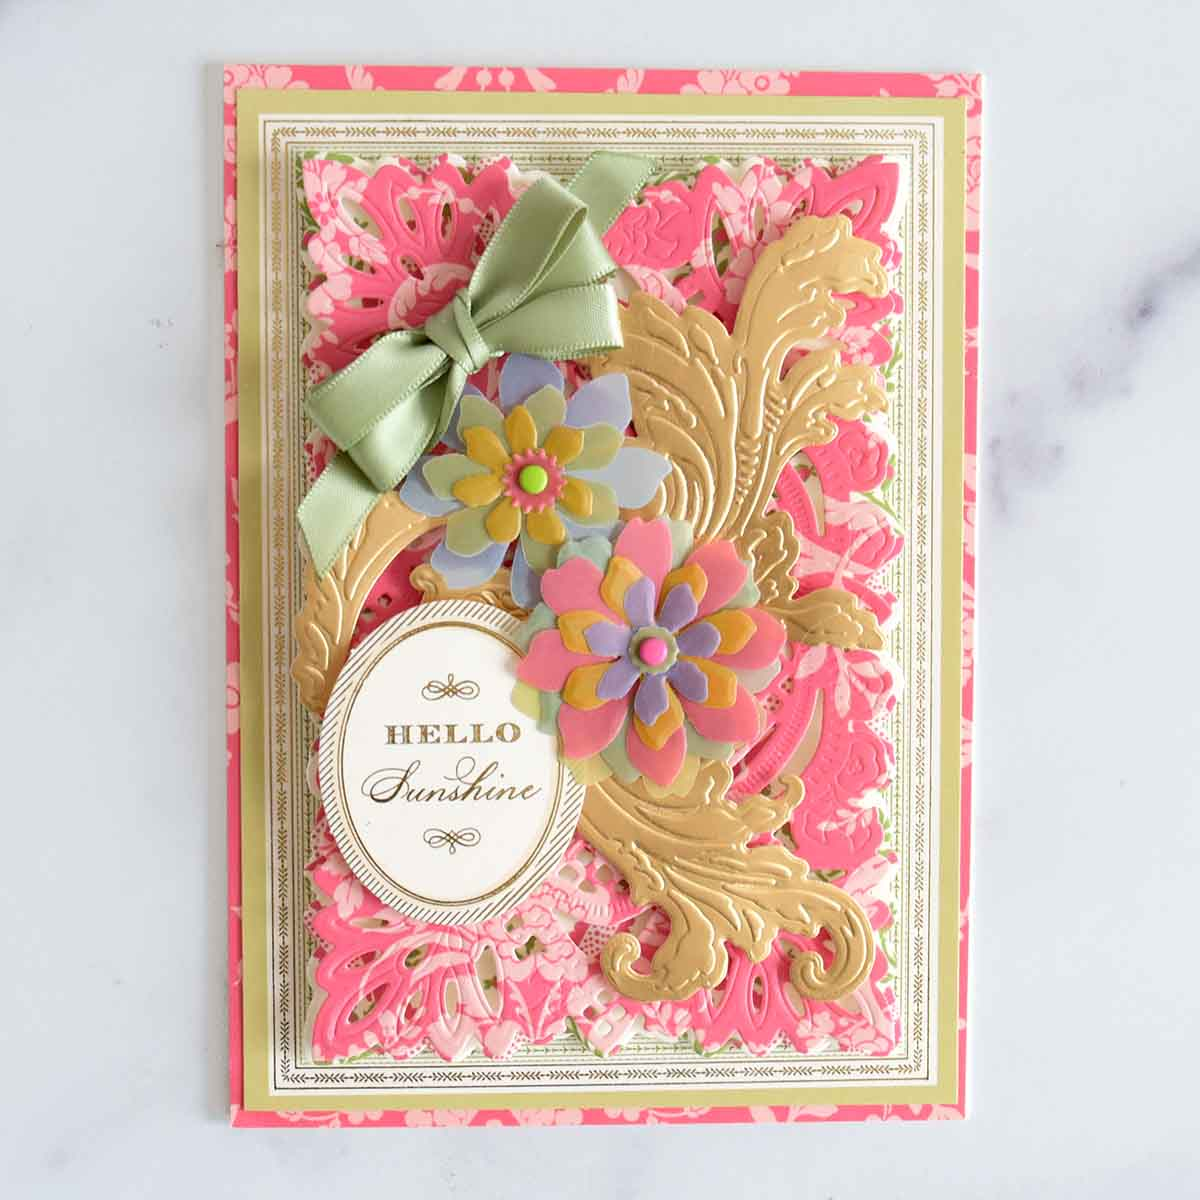 A pink damask card with green bordered layer and pink damask layer. There are two 3D flowers and 3 gold flourishes, a Hello Sunshine sentiment and sage double bow.